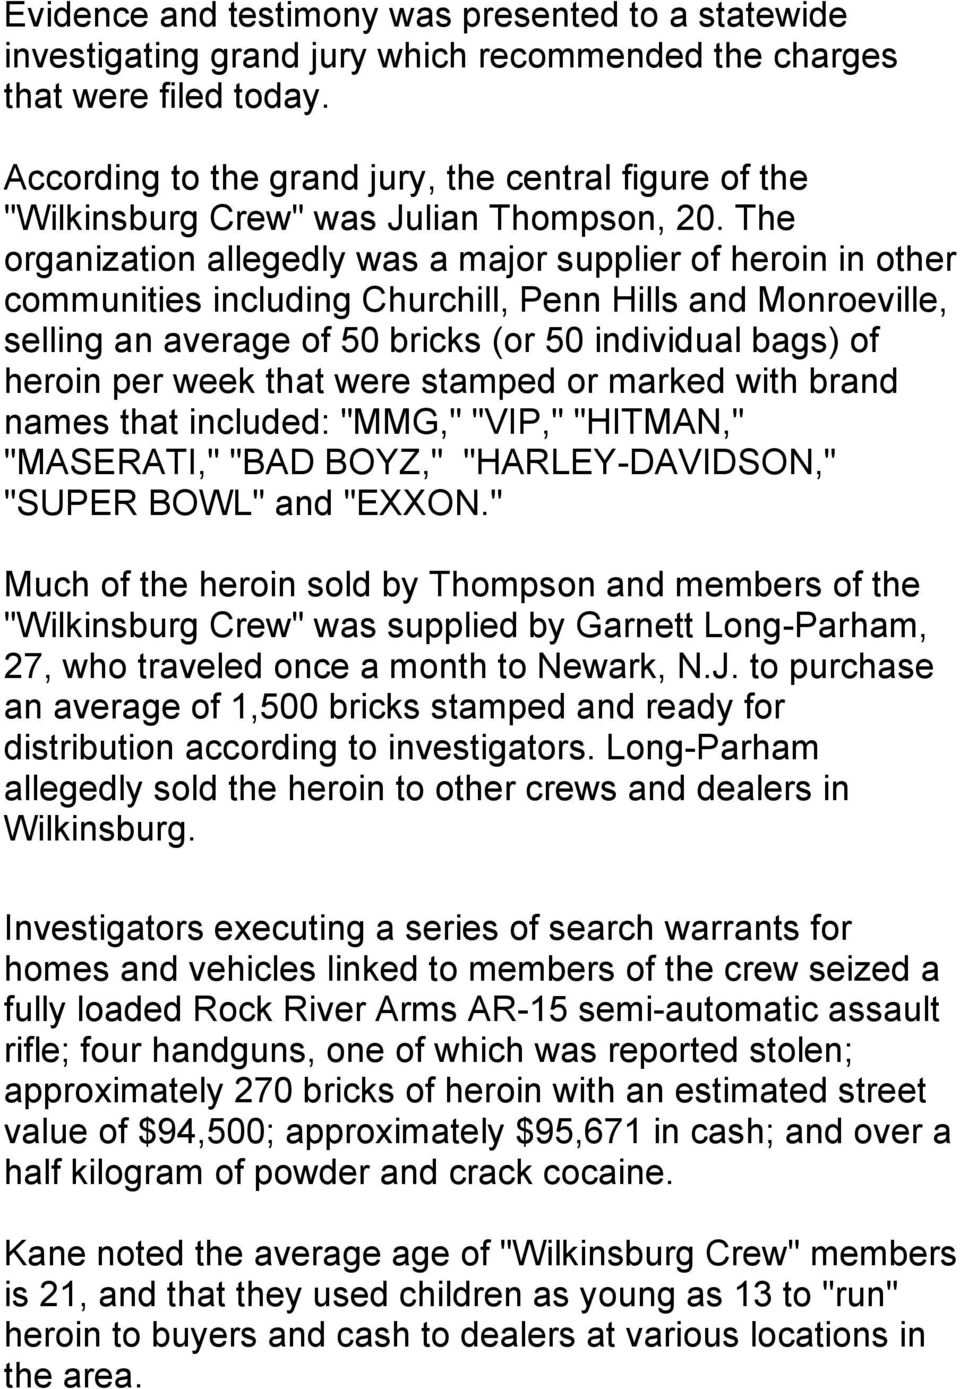 The organization allegedly was a major supplier of heroin in other communities including Churchill, Penn Hills and Monroeville, selling an average of 50 bricks (or 50 individual bags) of heroin per